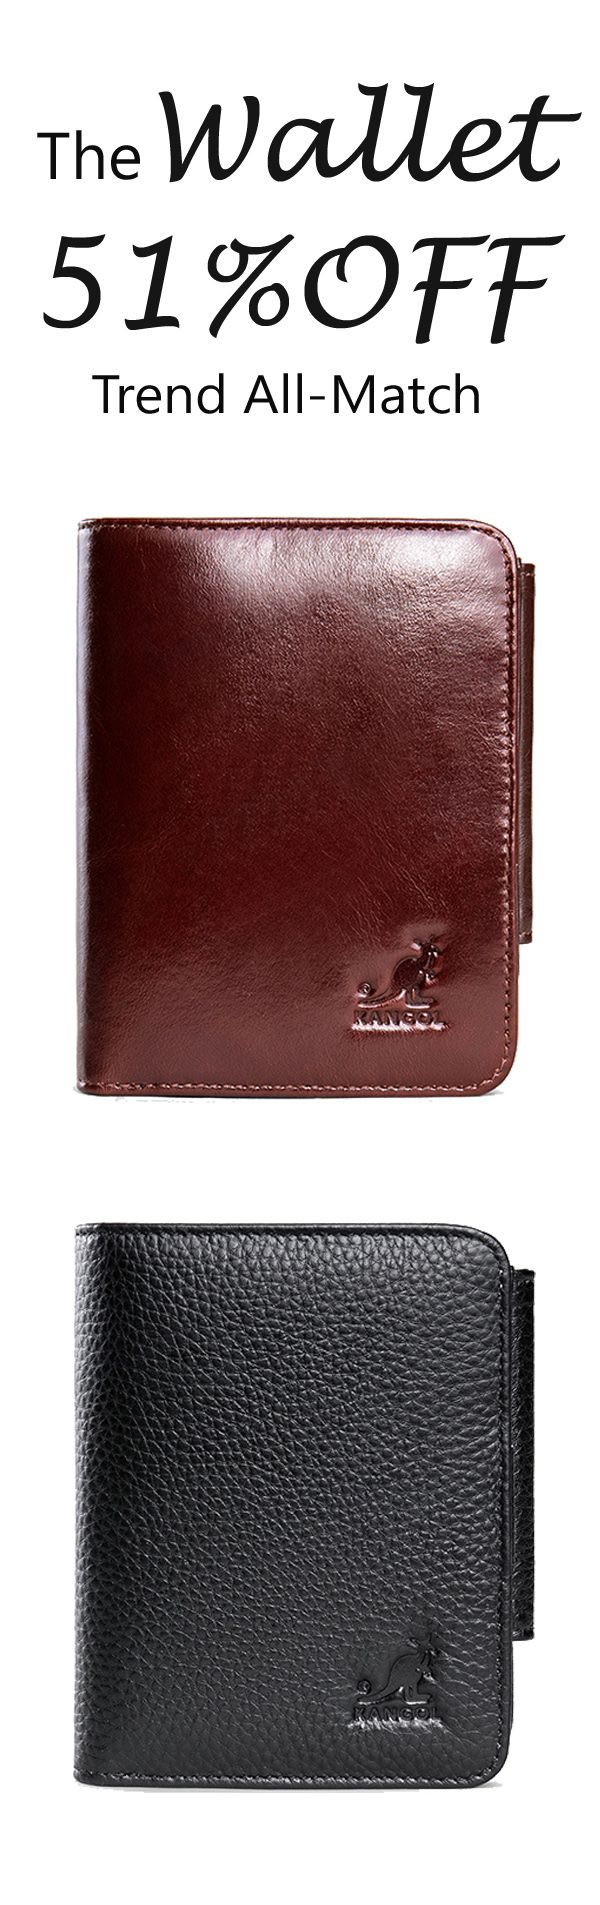 51%OFF&Free shipping. Genuine Leather Business Driver License 12 Card Slots Trifold Wallet For Men. Find all you need in banggood.com, shop now~ #ketorecipes #promdresses #laundryroomideas #mondayhumor #valentines #casualoutfits #babyshowerideas